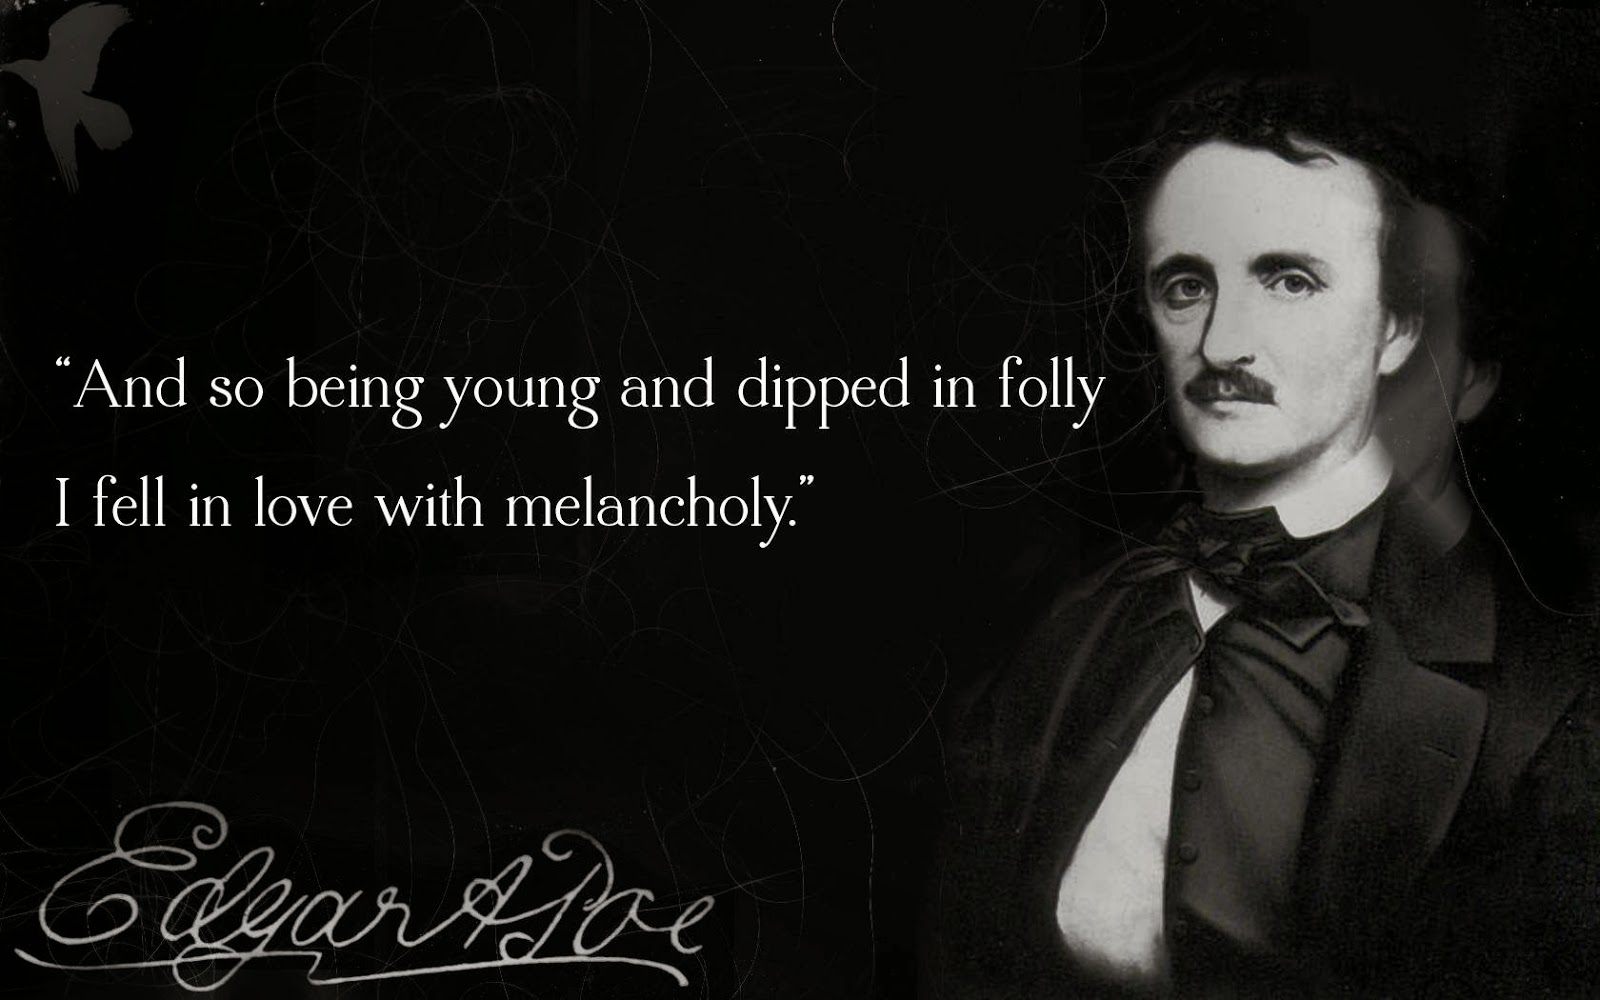 edgar allan poe s life and how Poe's life life milestones current events contemporary events 1809: 1809 edgar poe born in boston to actors david and eliza poe, 19 january.